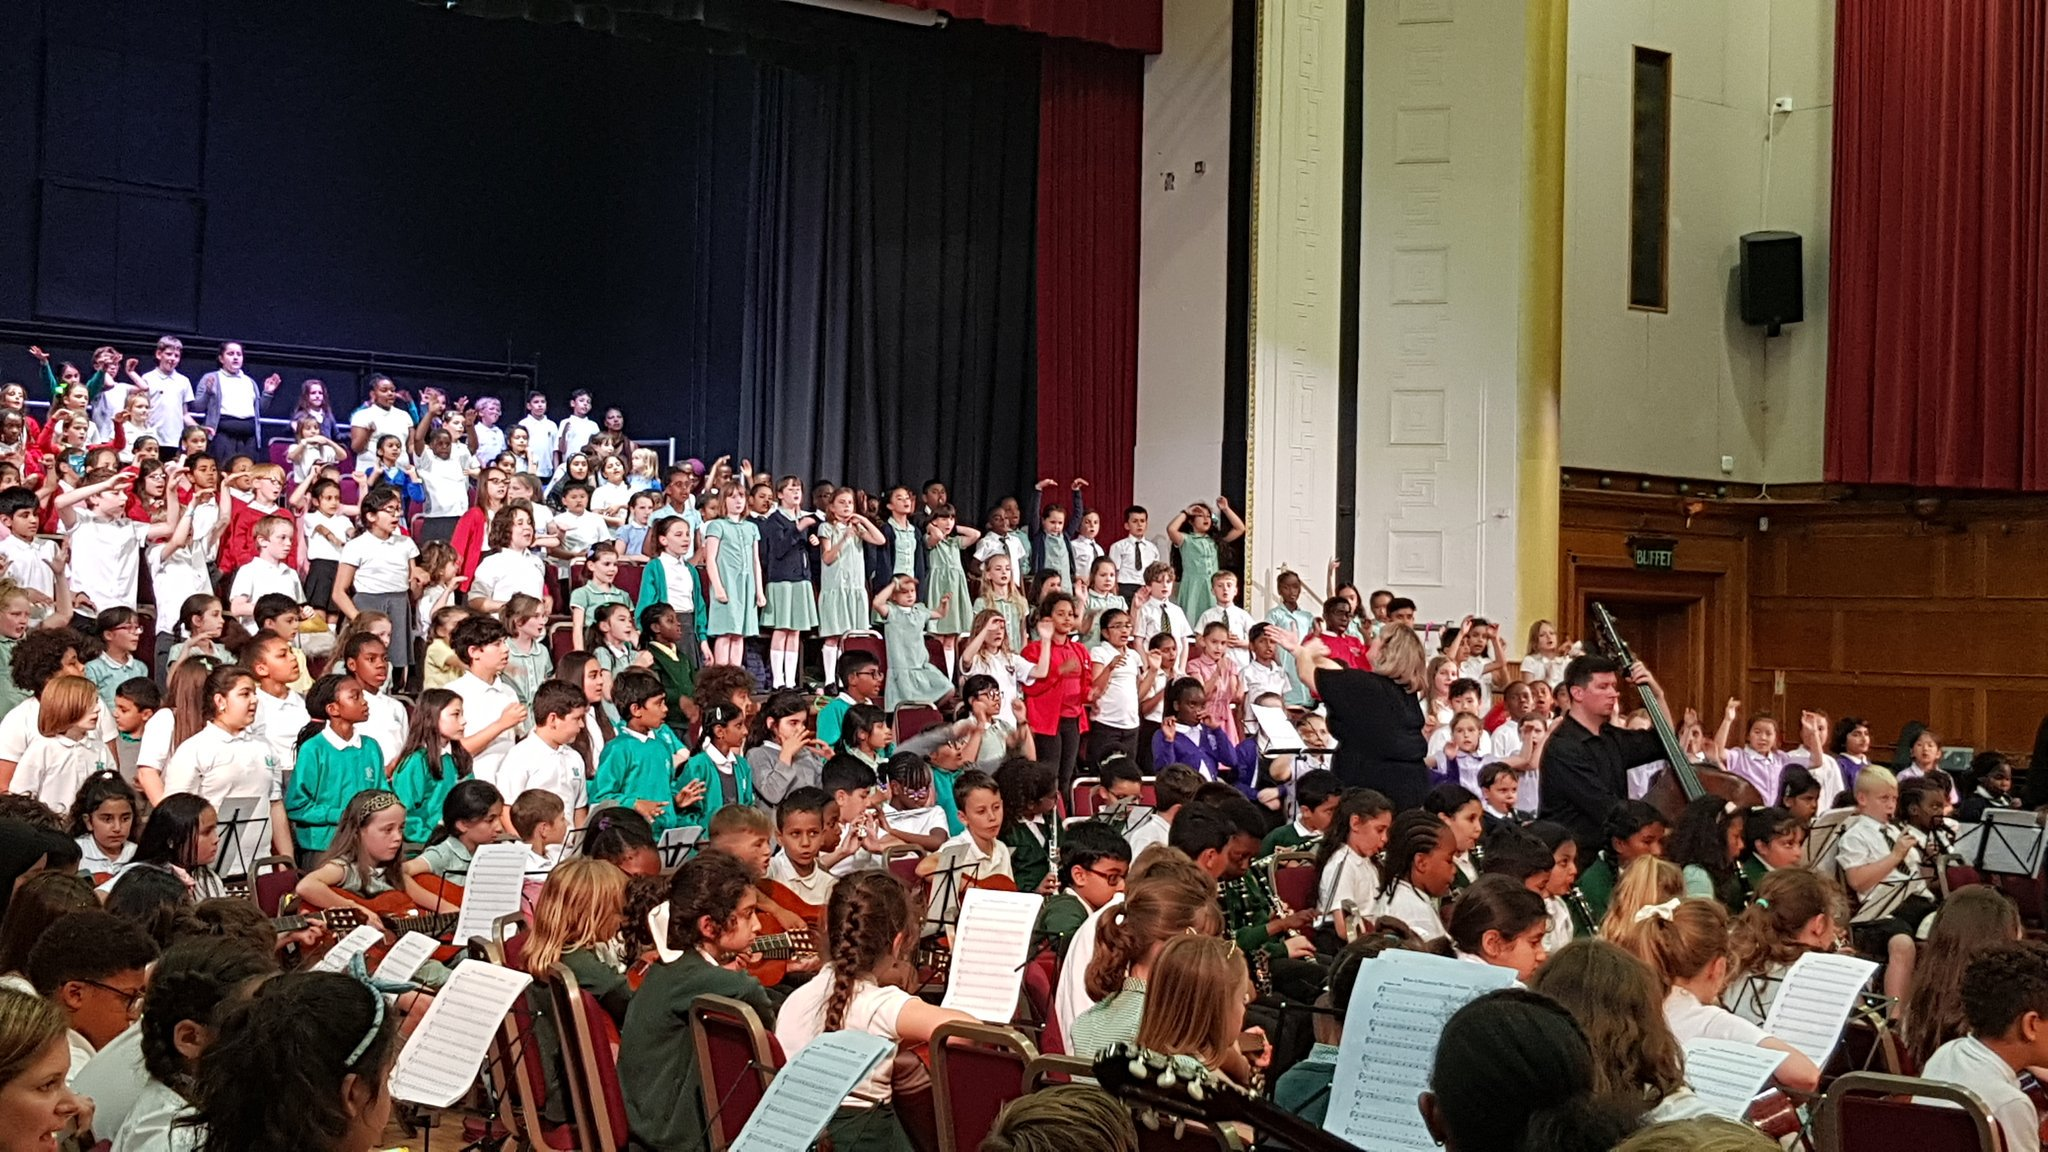 Finale of the Waltham Forest Music Festival at Walthamstow Assembly Hall